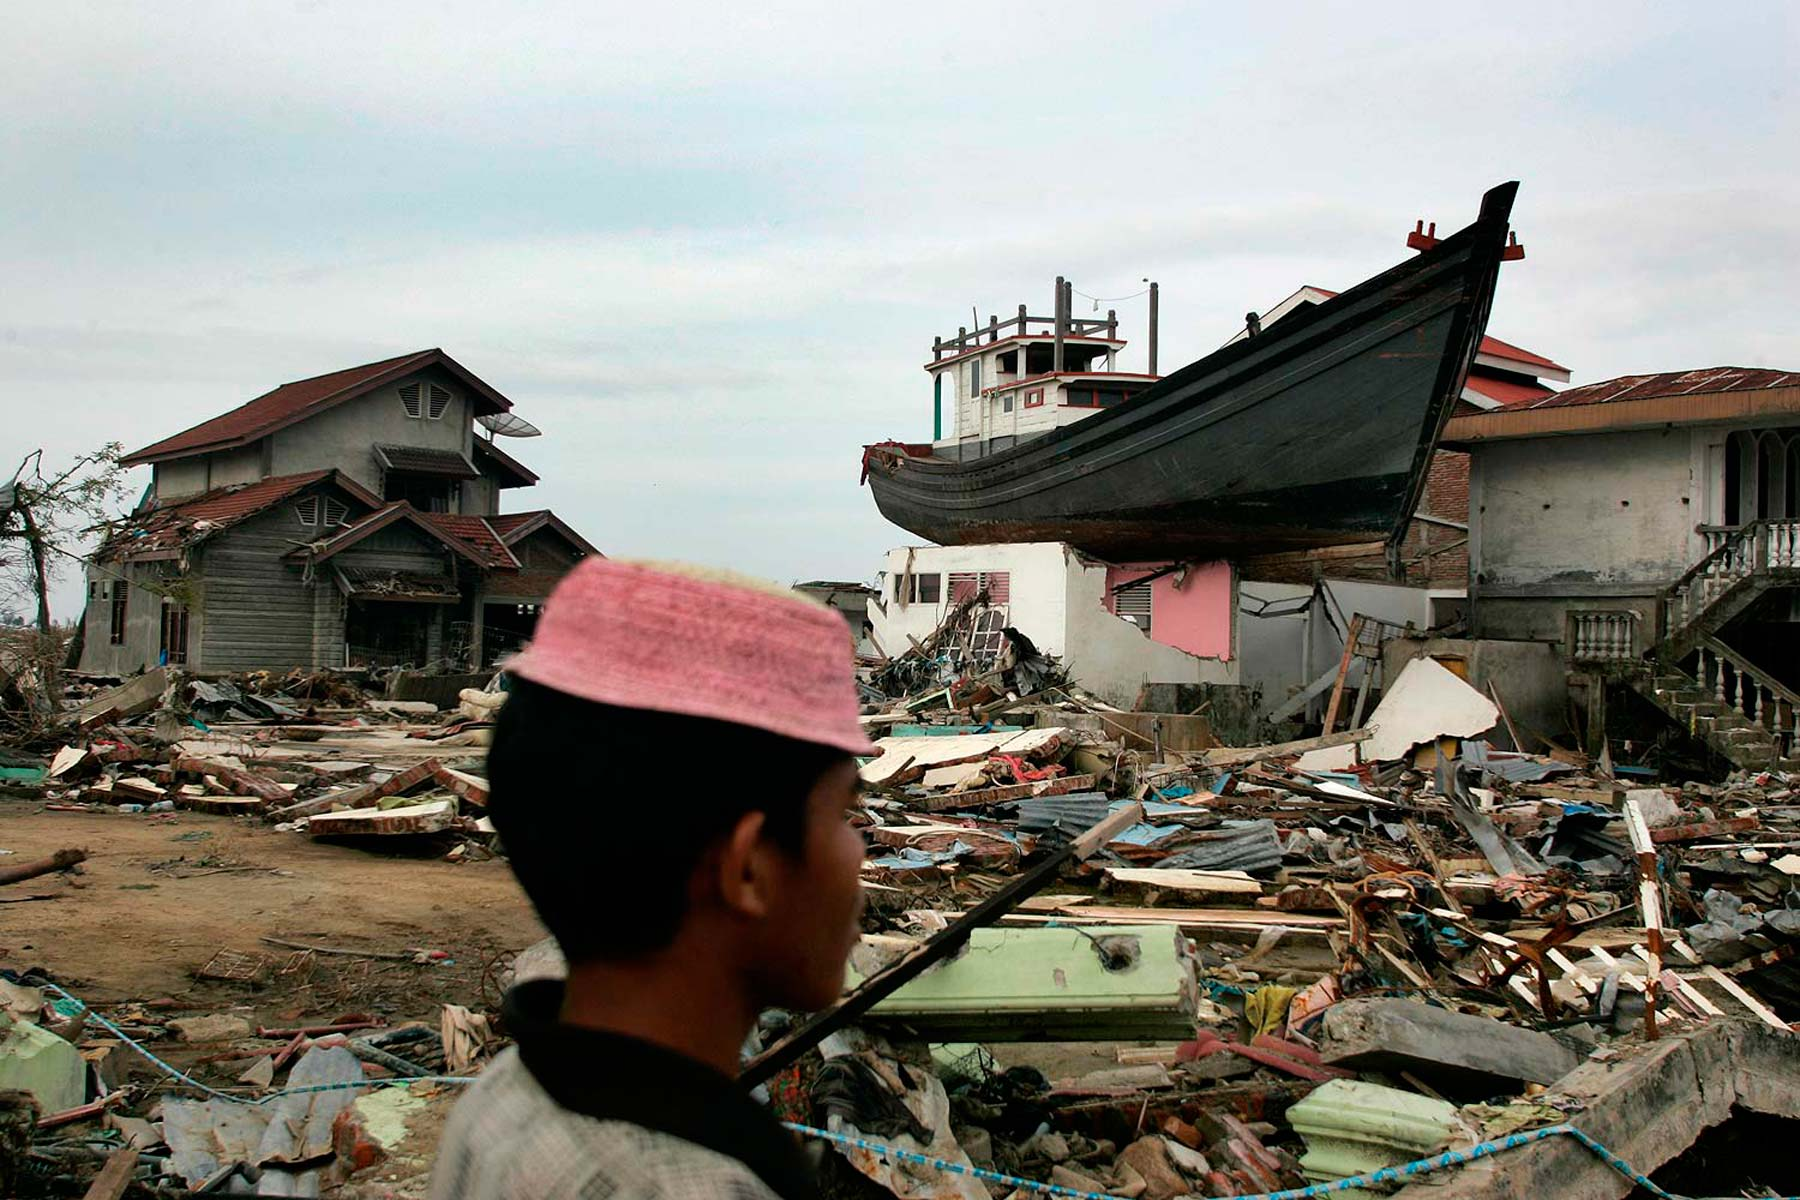 Aceh boy walks past boat on top of house after tsunami